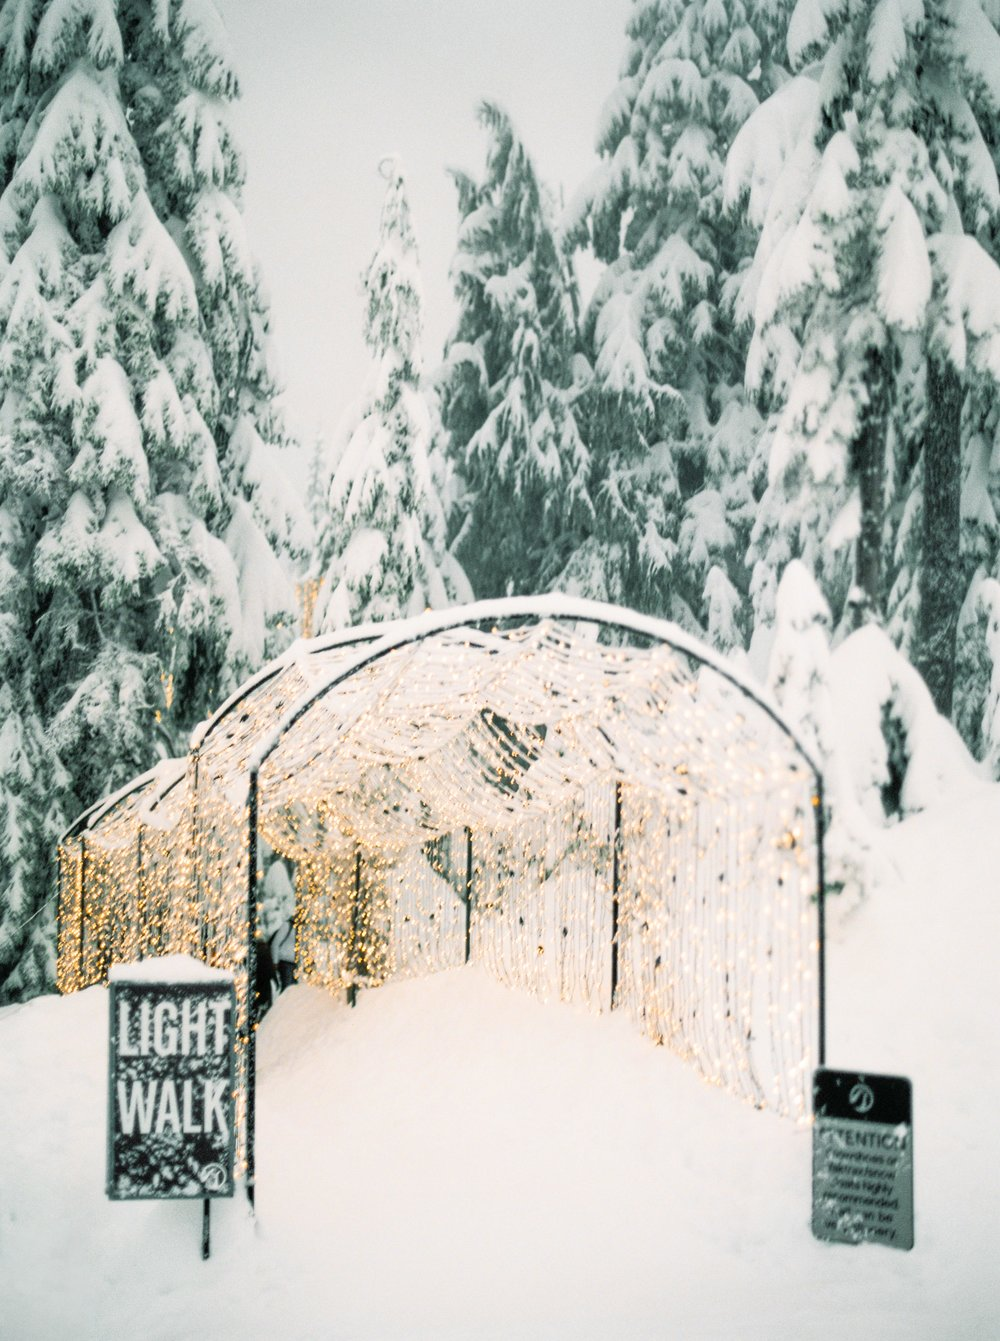 Light Walk Entrance on Grouse Mountain